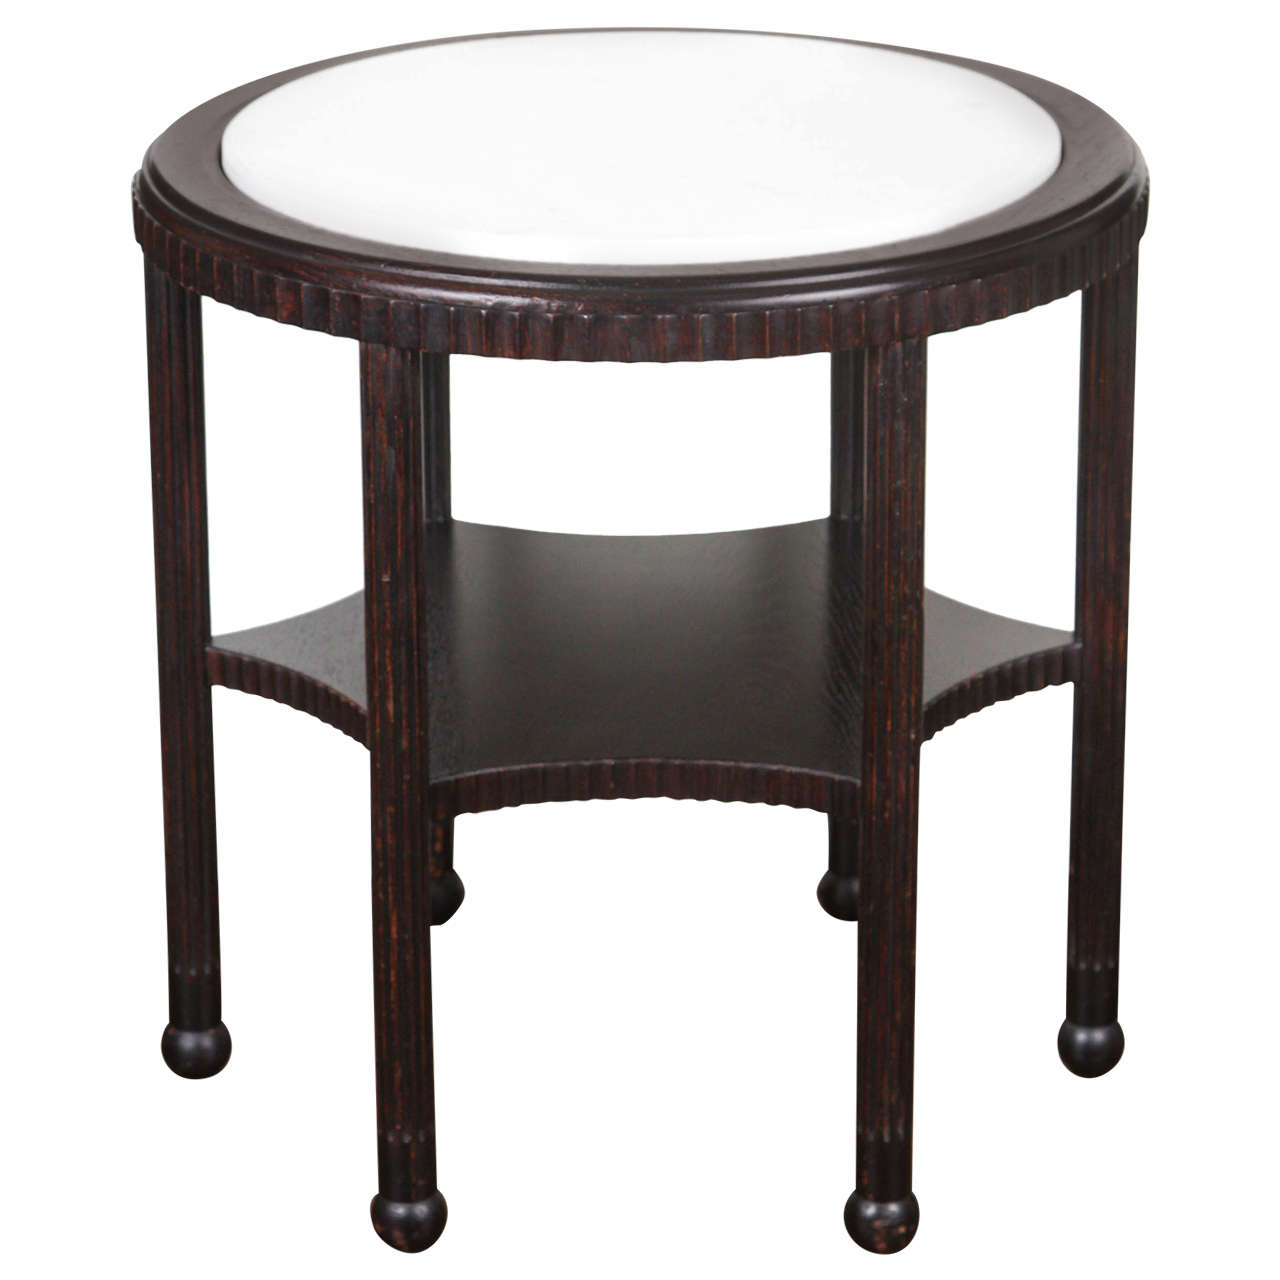 1970 39 S Round Side Table With Marble Top For Sale At 1stdibs